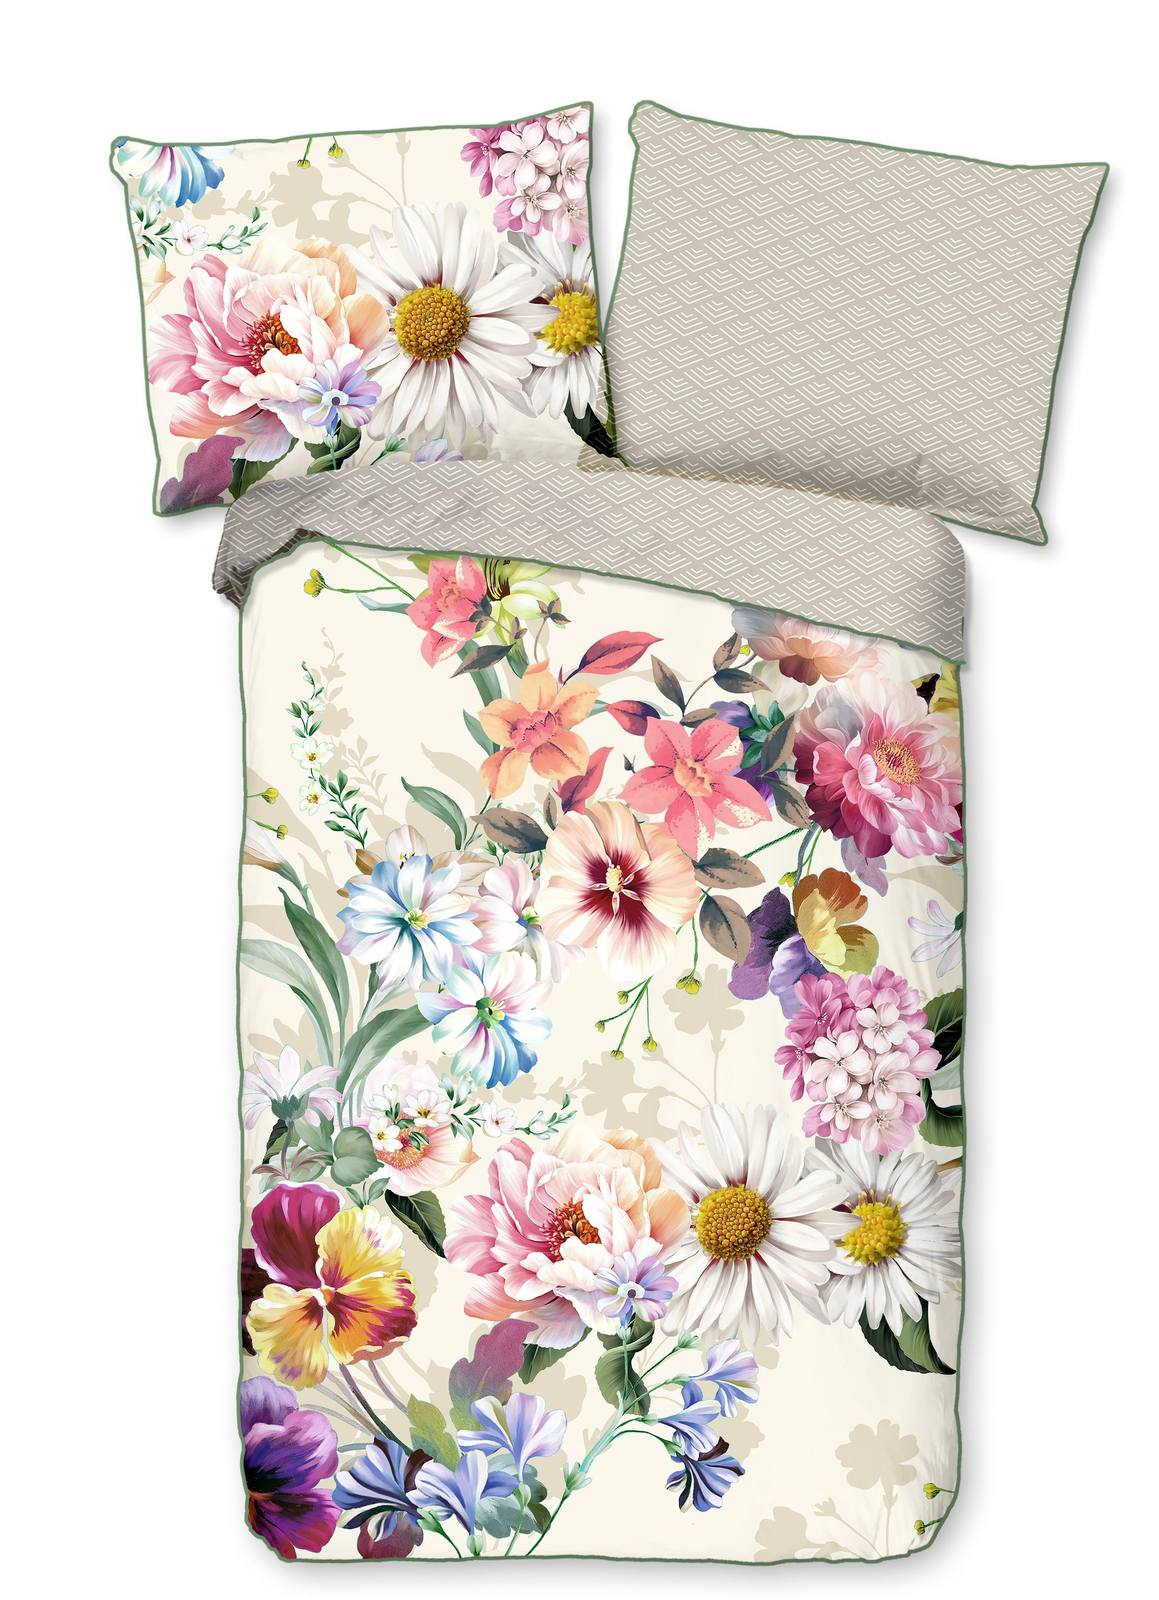 Home white double-sided single bed bed linen Novara 140x200cm